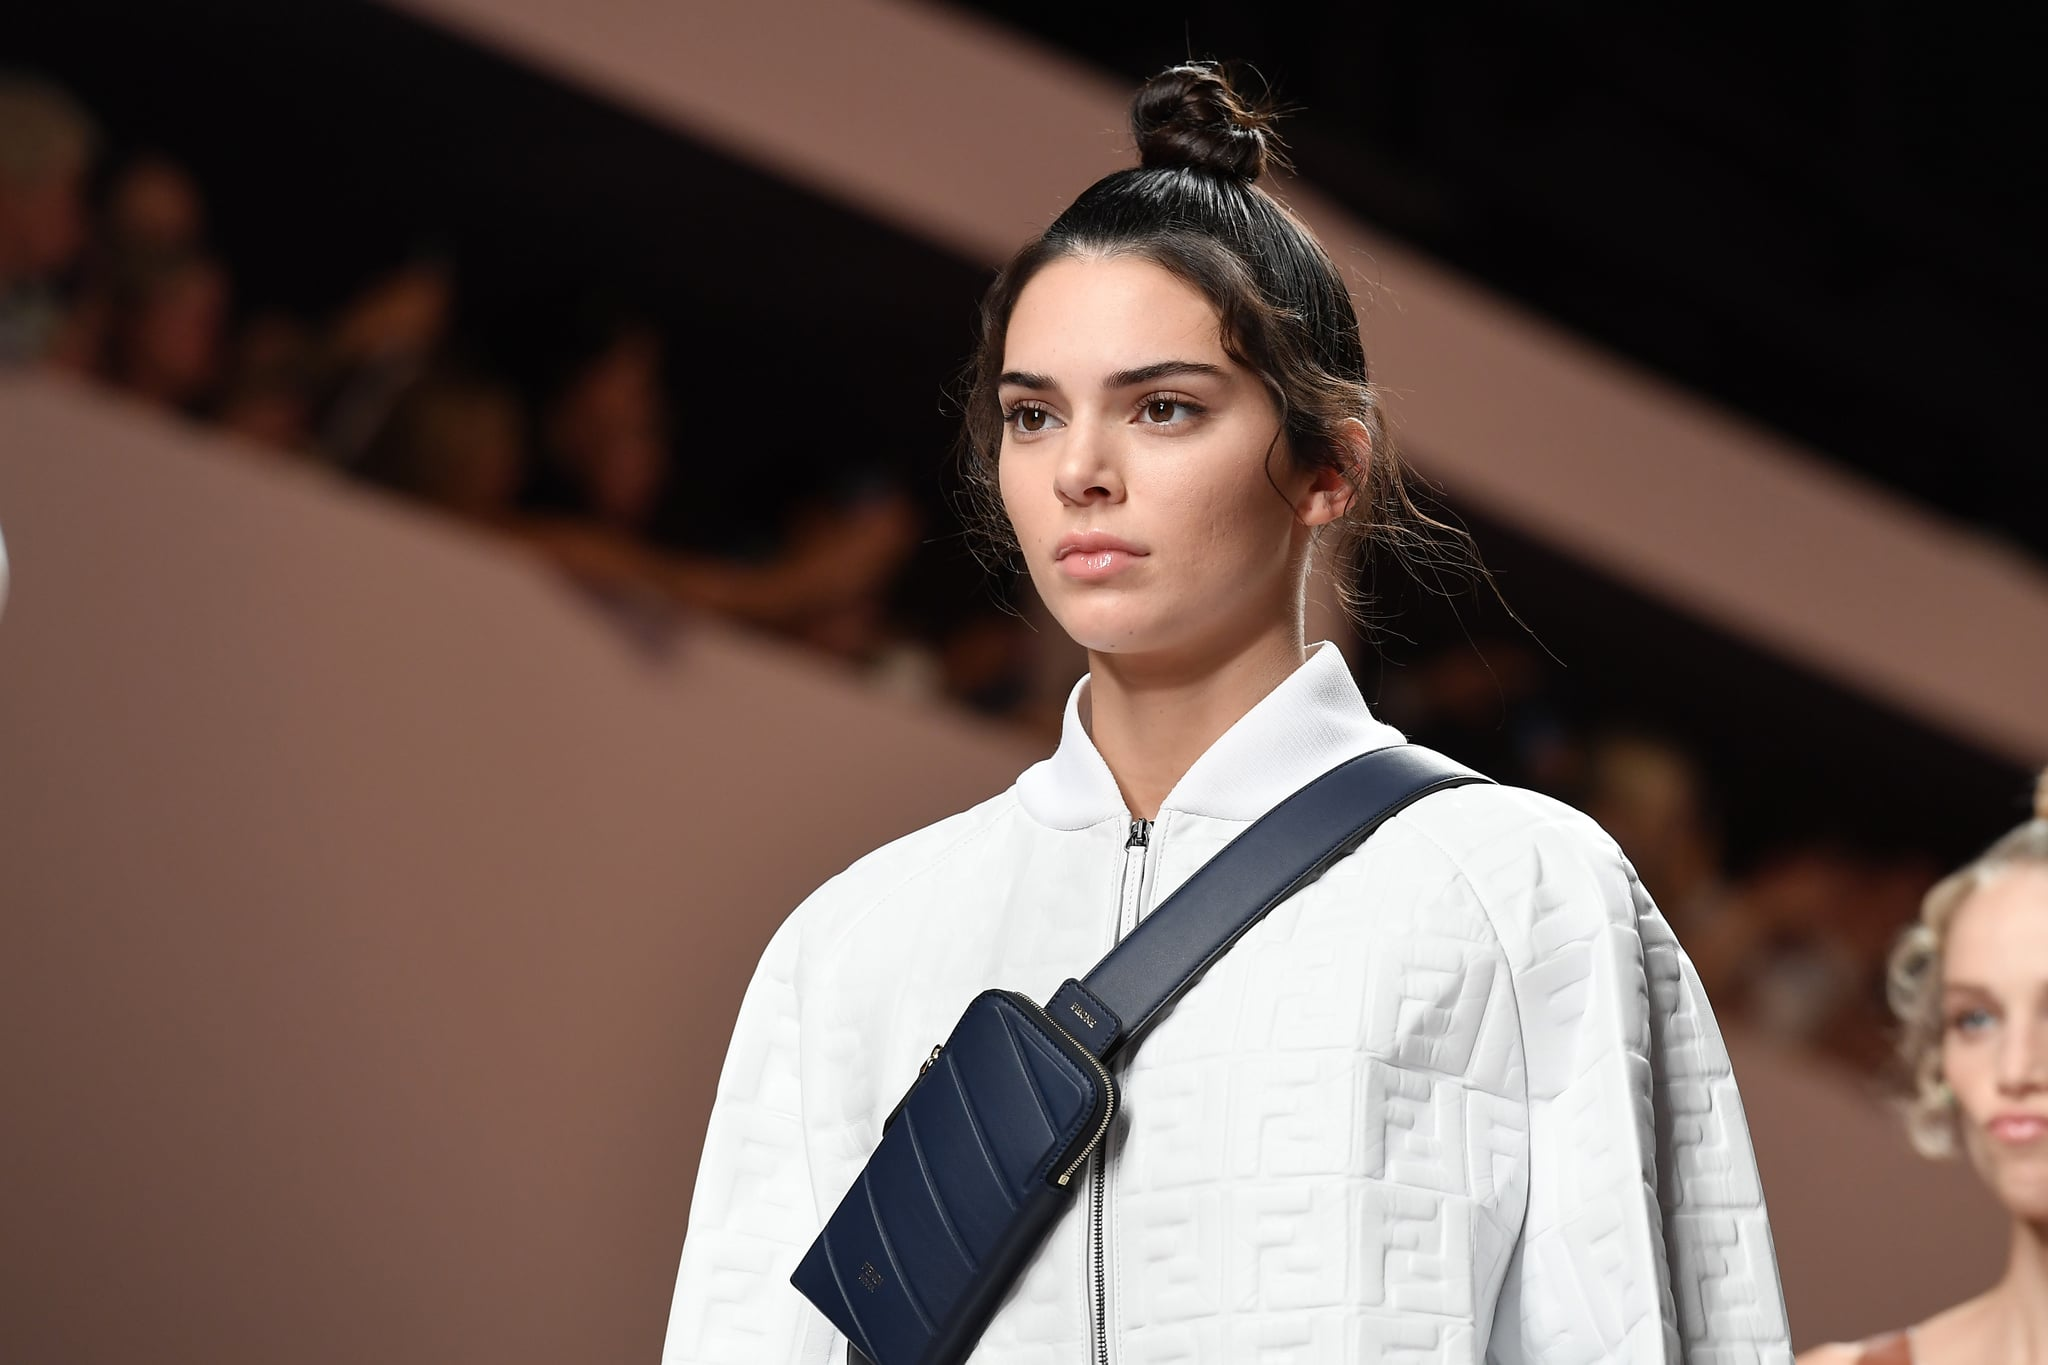 MILAN, ITALY - SEPTEMBER 20: Kendall Jenner walks the runway at the Fendi show during Milan Fashion Week Spring/Summer 2019 on September 20, 2018 in Milan, Italy.  (Photo by Jacopo Raule/Getty Images)